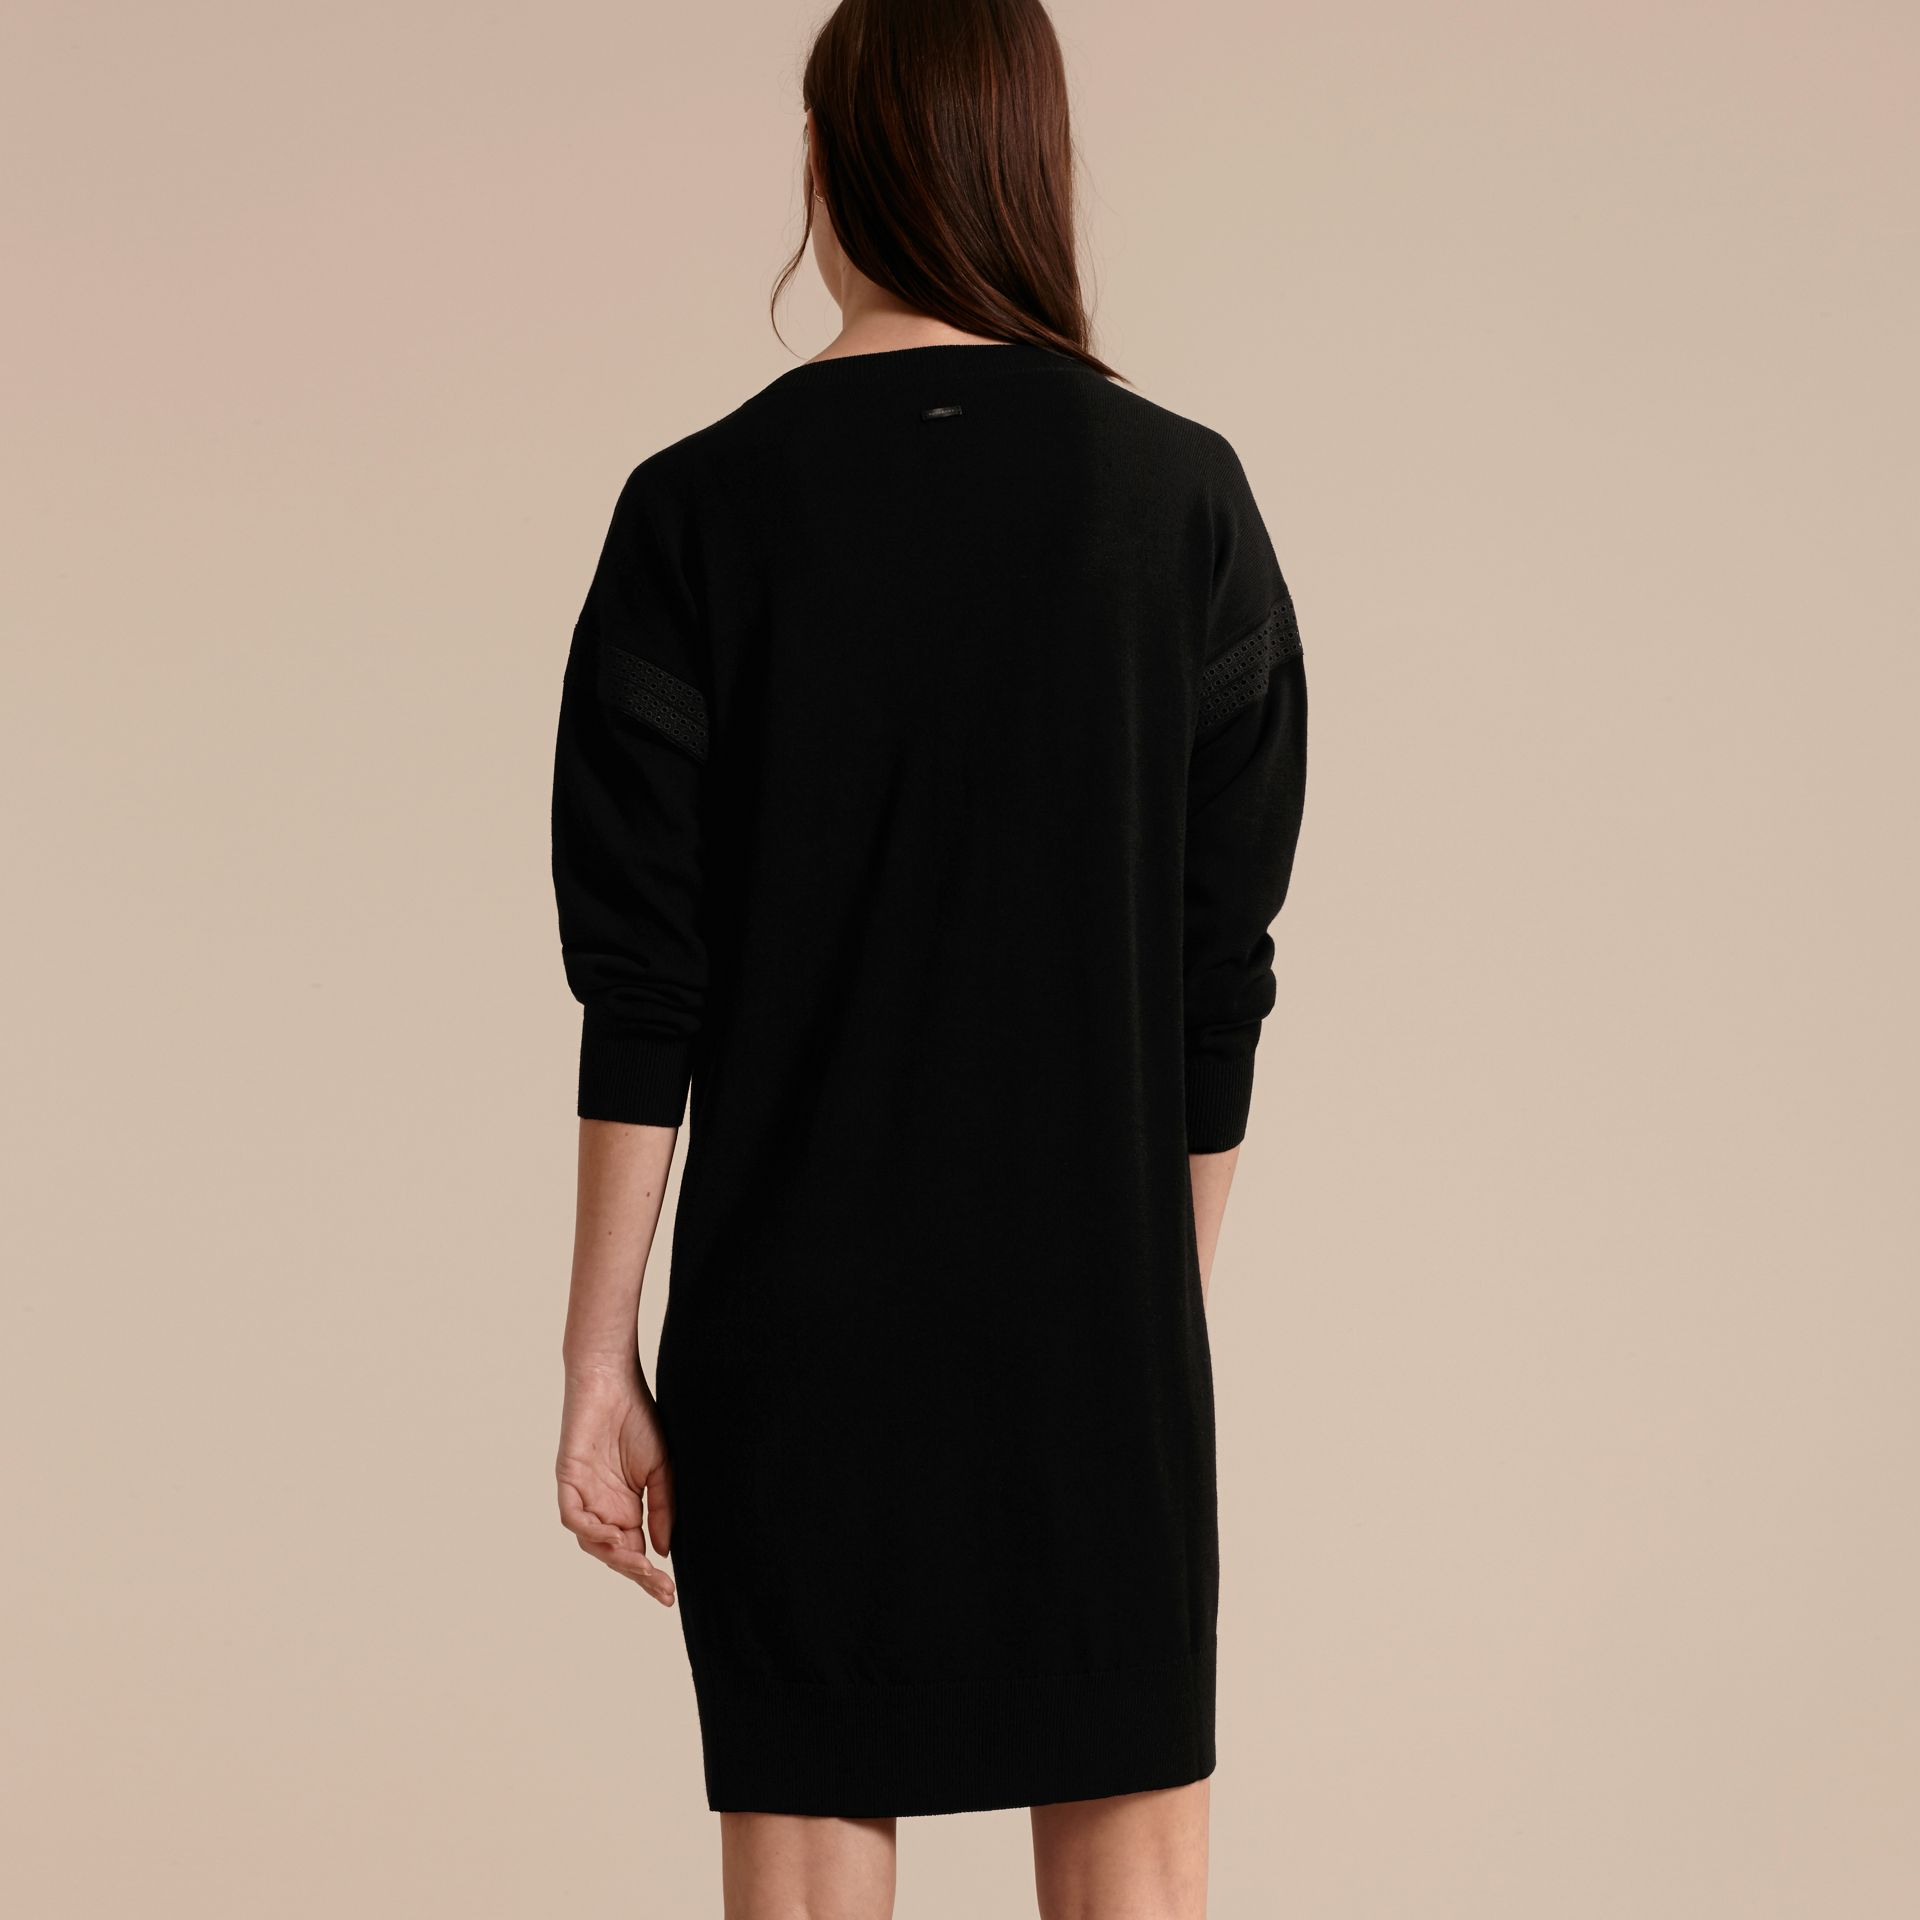 Black Lace-trimmed Merino Wool Dress - gallery image 3